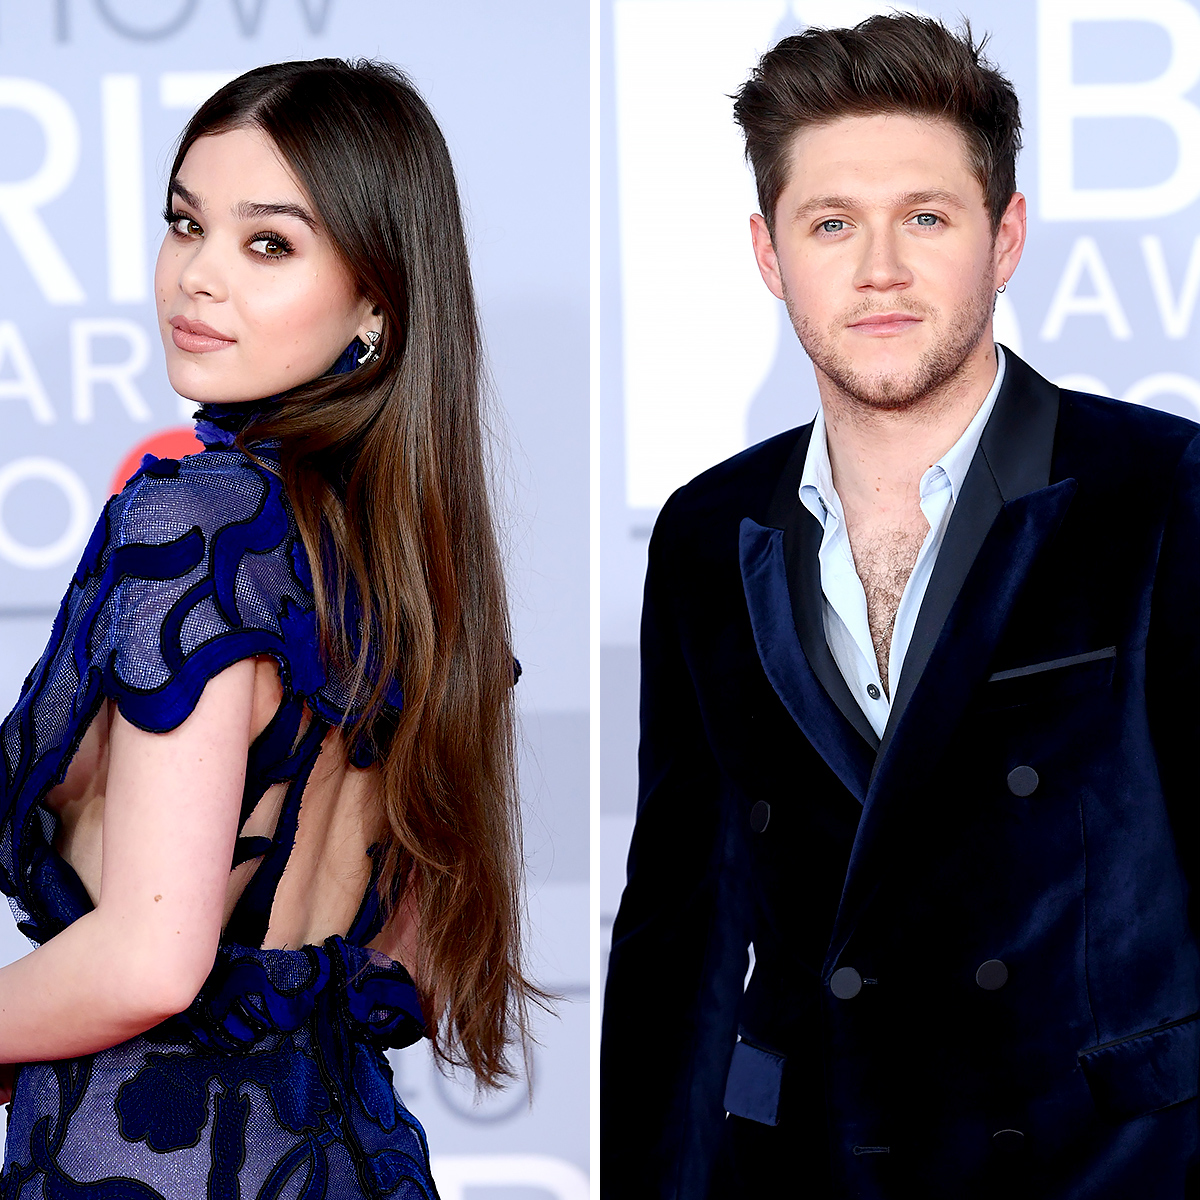 Hailee Steinfeld Cringes When Niall Horan Song Plays in Livestream